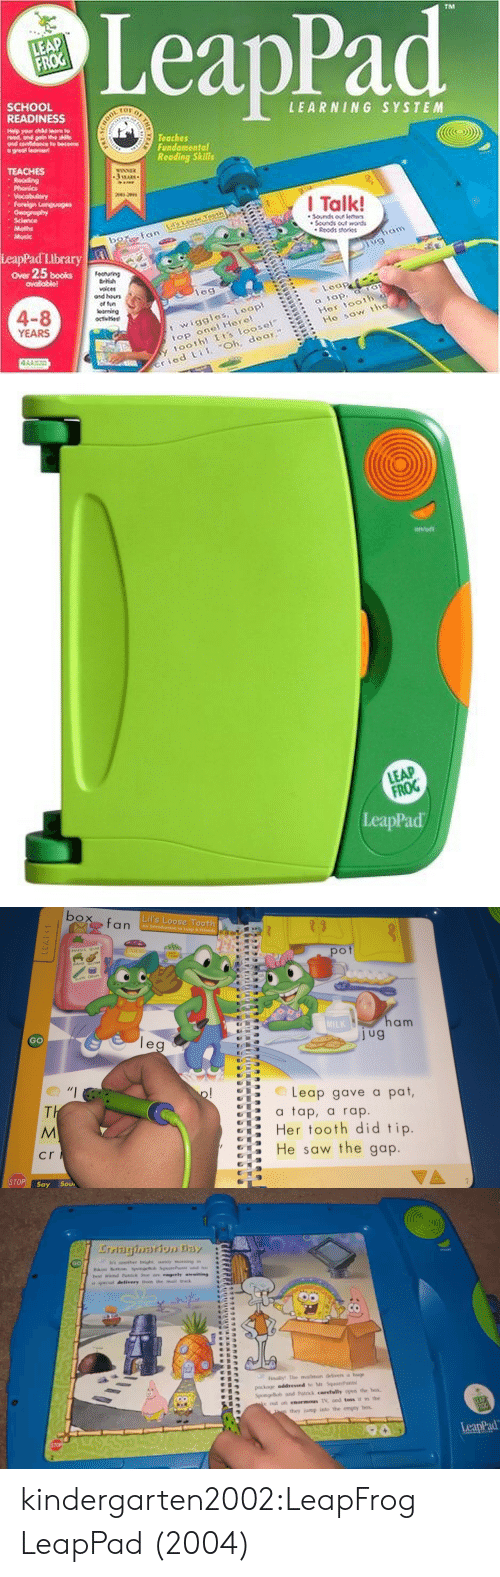 Books leapfrog and music leappad school readiness learning system teaches fundomental reoding skills